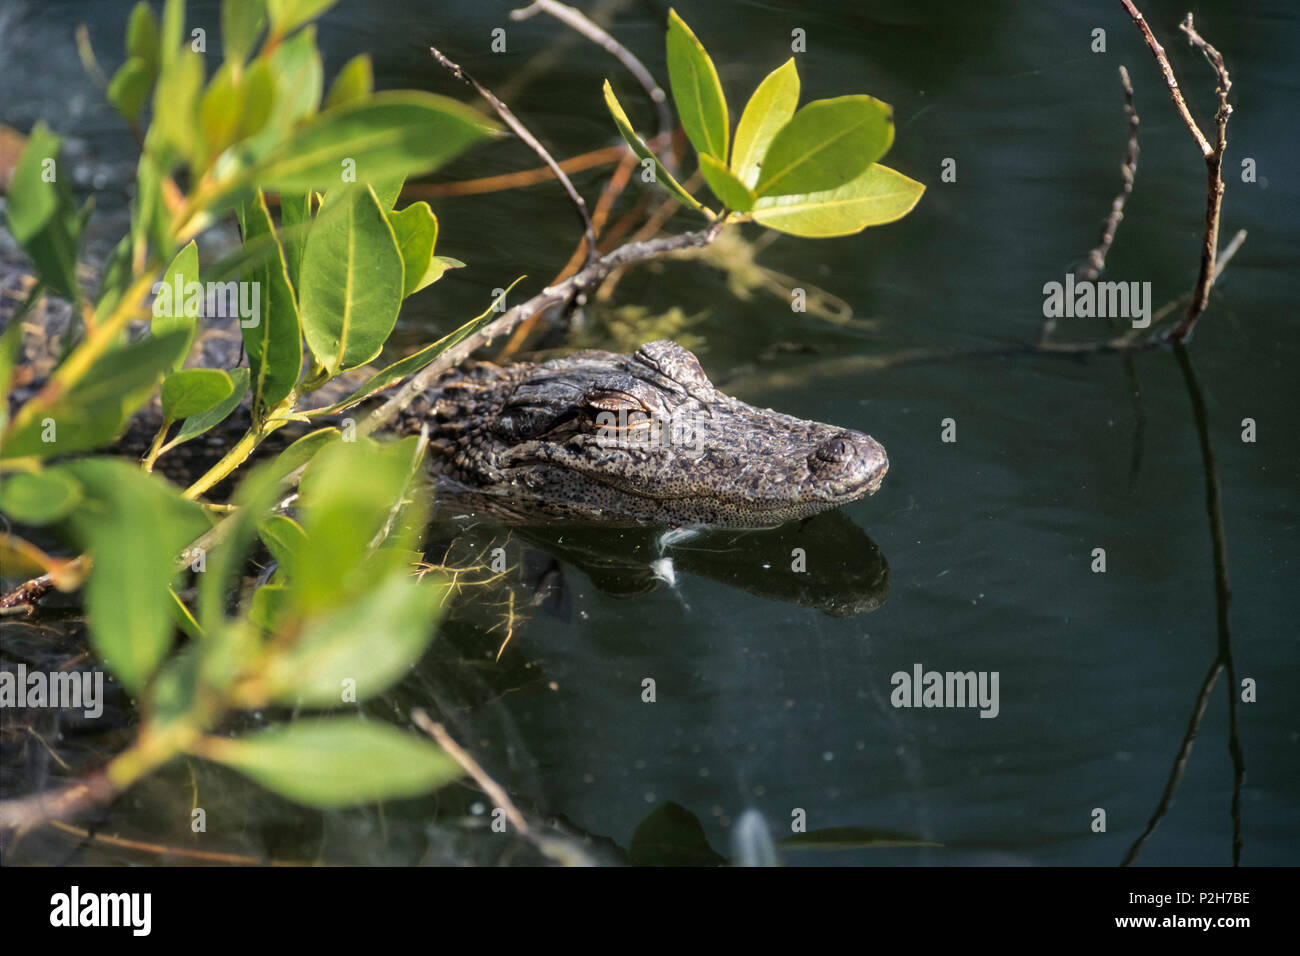 young Mississippi-Alligator in mangroves, Alligator mississippiensis, Ding Darling, Florida, USA - Stock Image